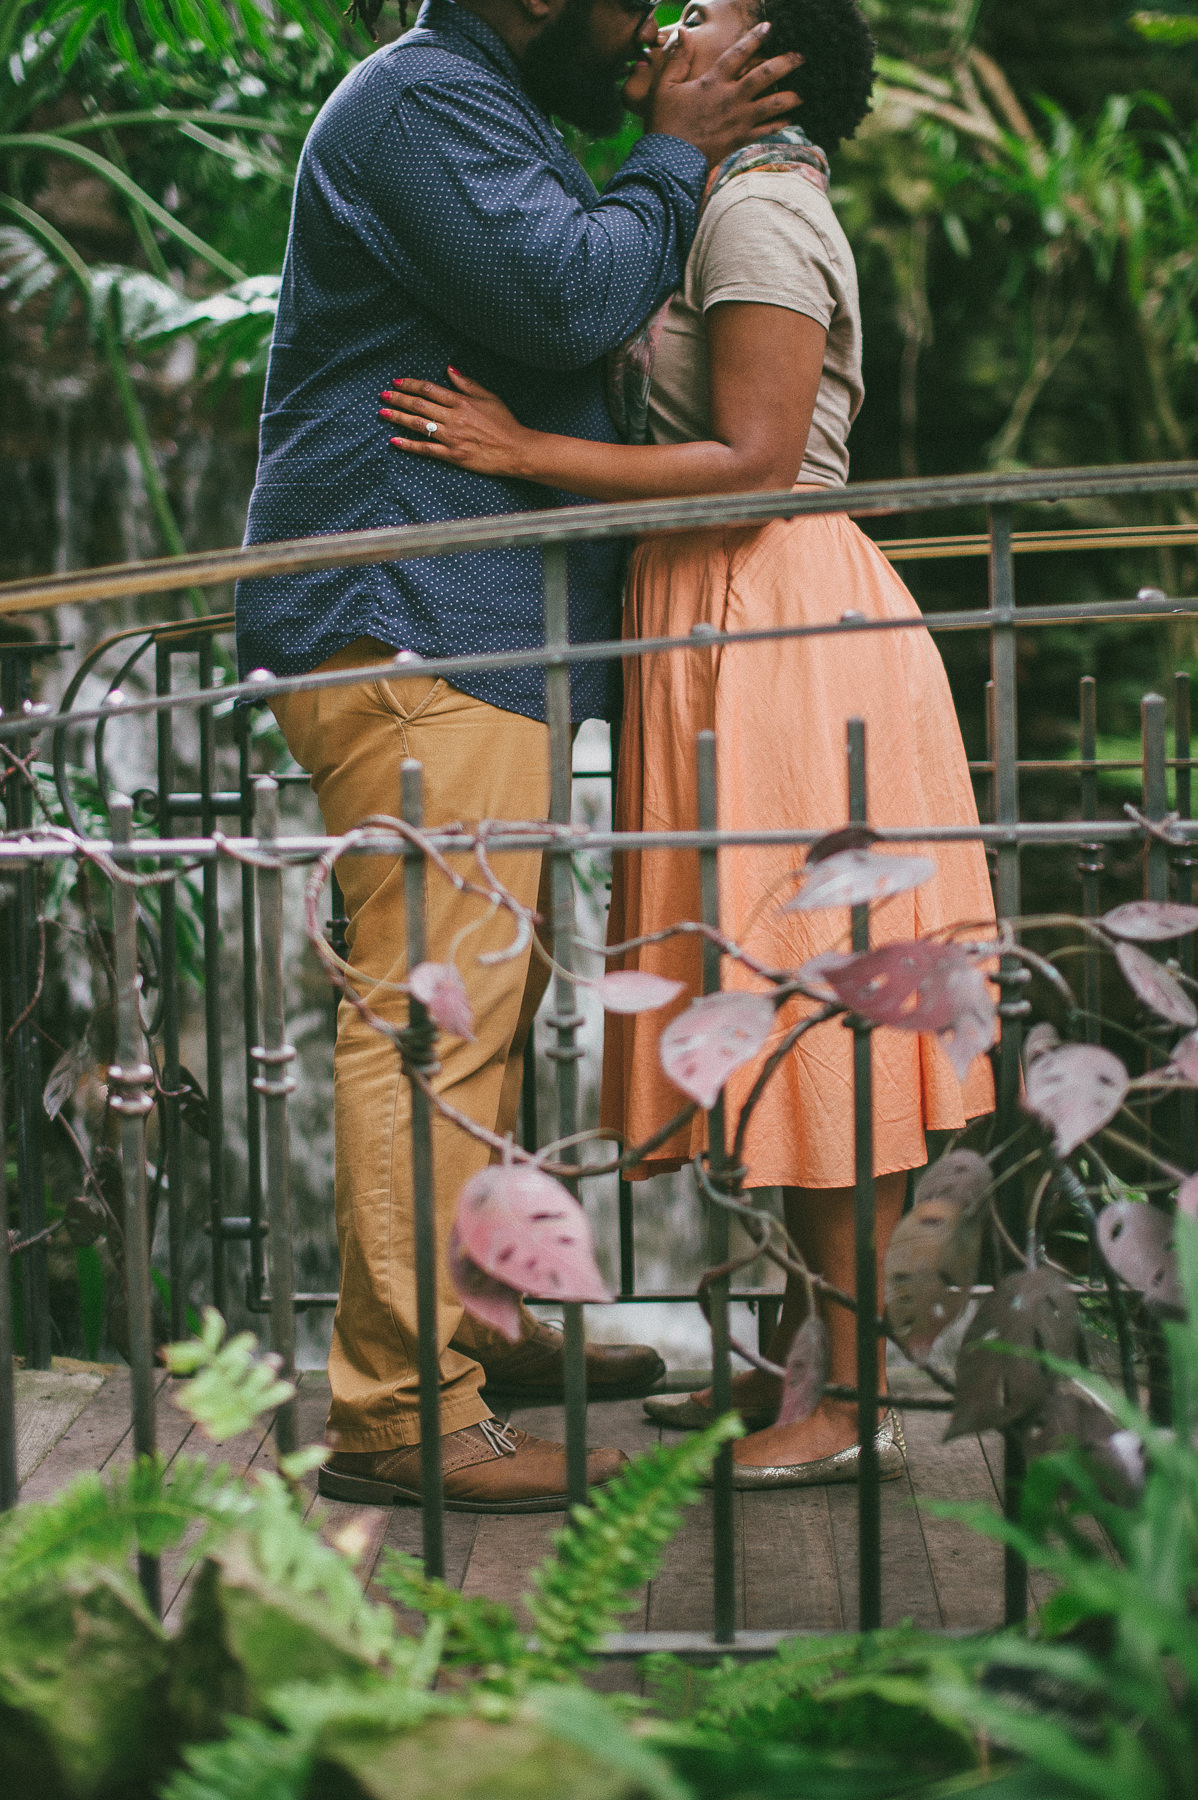 breighton-and-basette-photography-copyrighted-image-blog-joy-and-basette-engagement-029.jpg